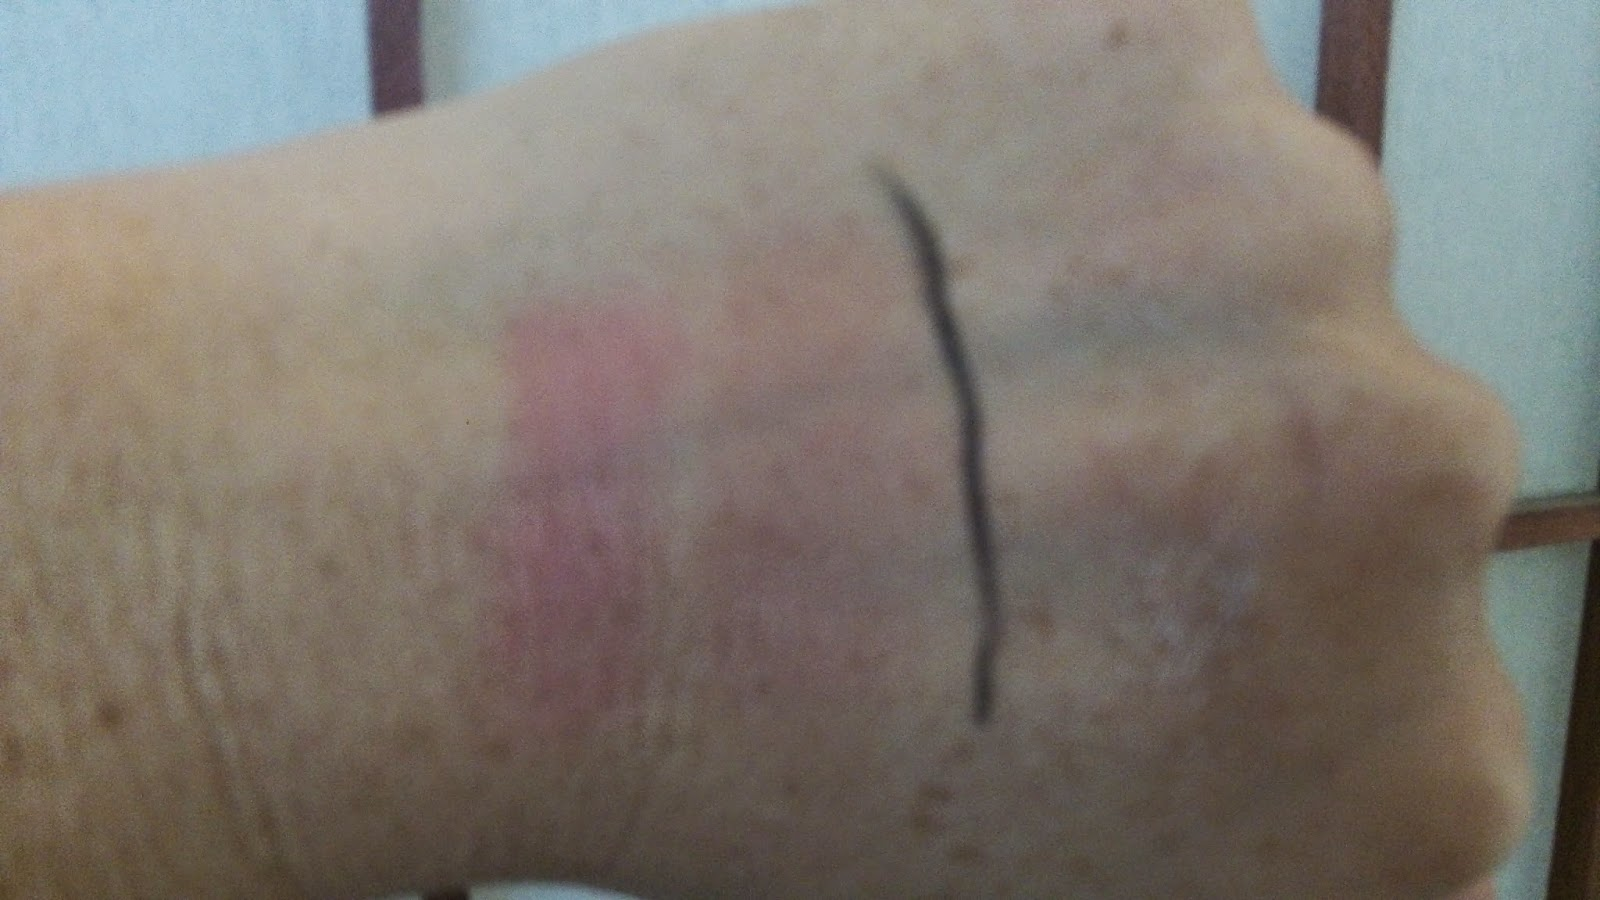 Swatch of Lord & Berry Kajal Kohl-Liner